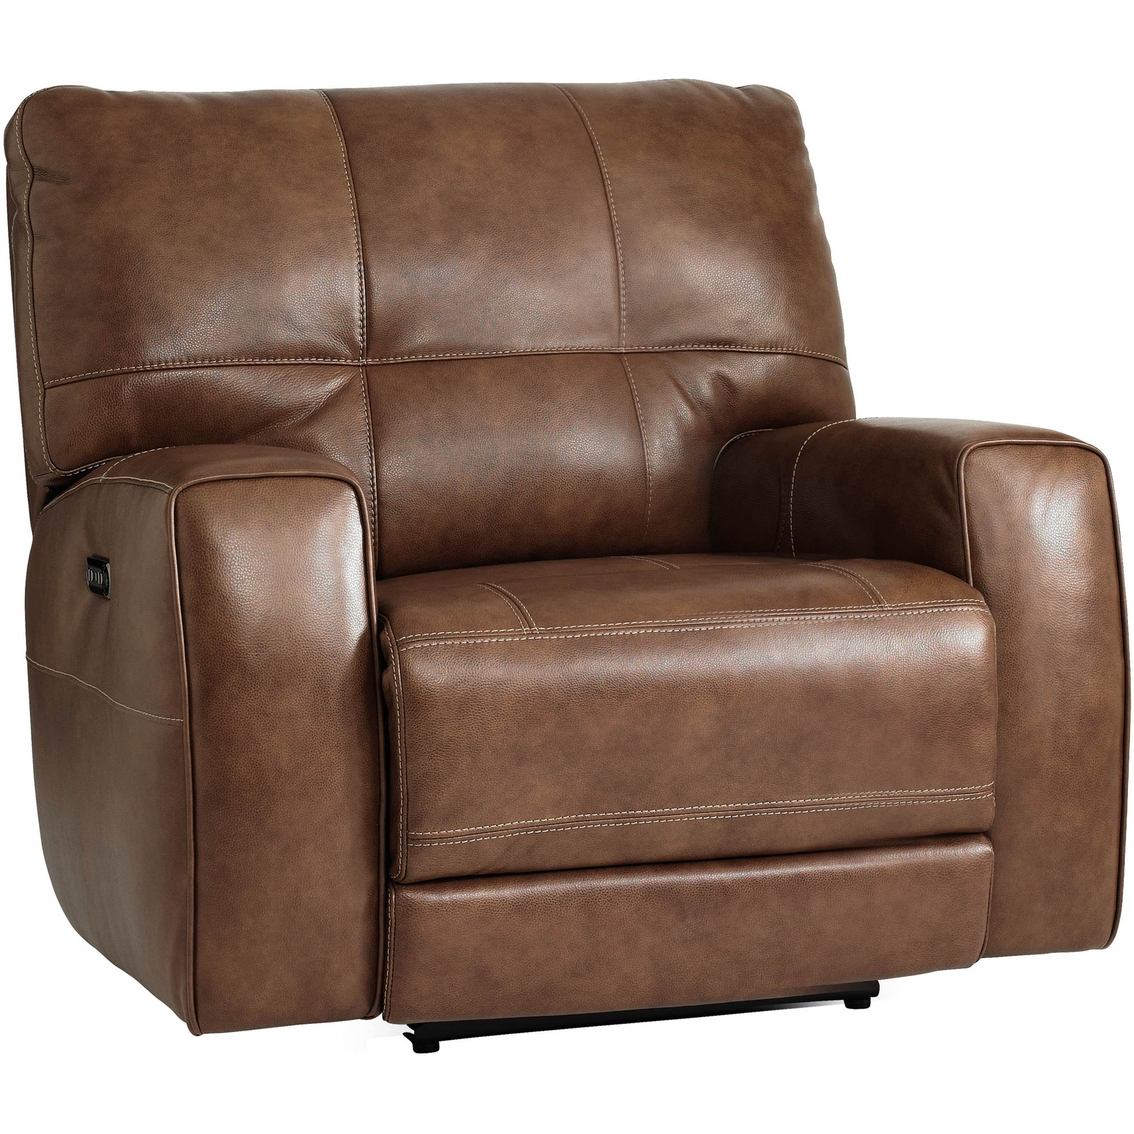 Electric Recliner Leather Chairs Bassett Conway Power Recliner Chairs Recliners Home